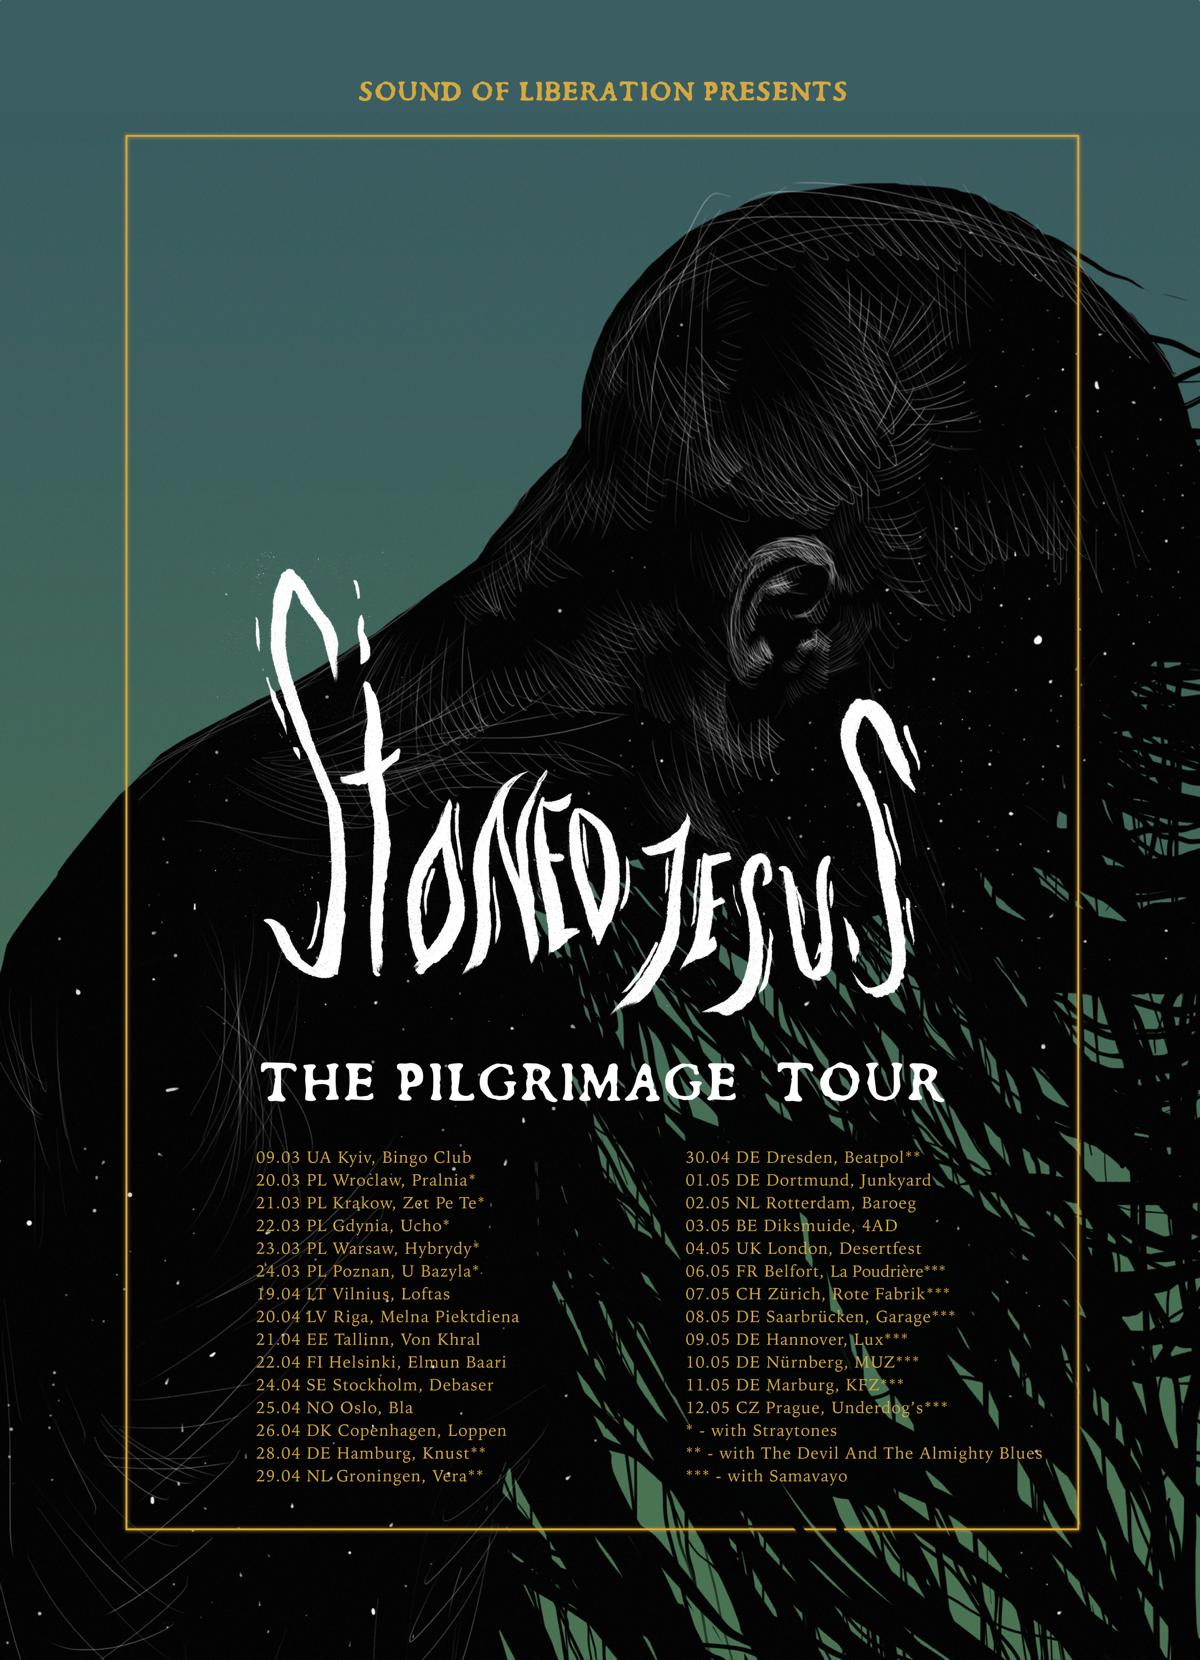 Tourplakat von Stoned Jesus auf The Pilgrimage Tour 2019